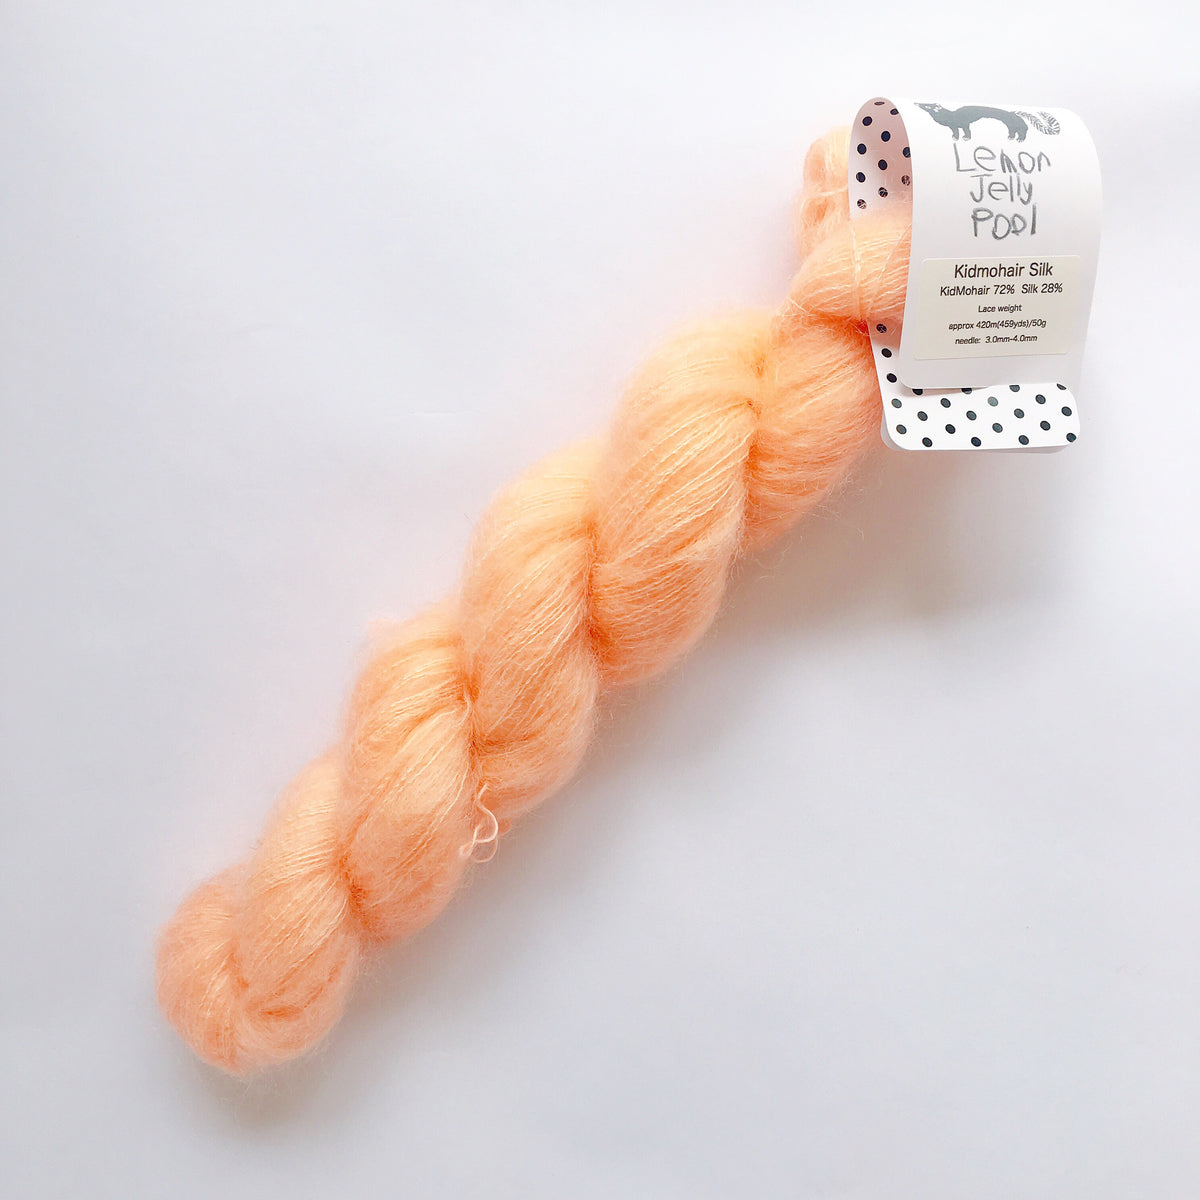 LJP Kid Mohair Silk: 桃のスープ